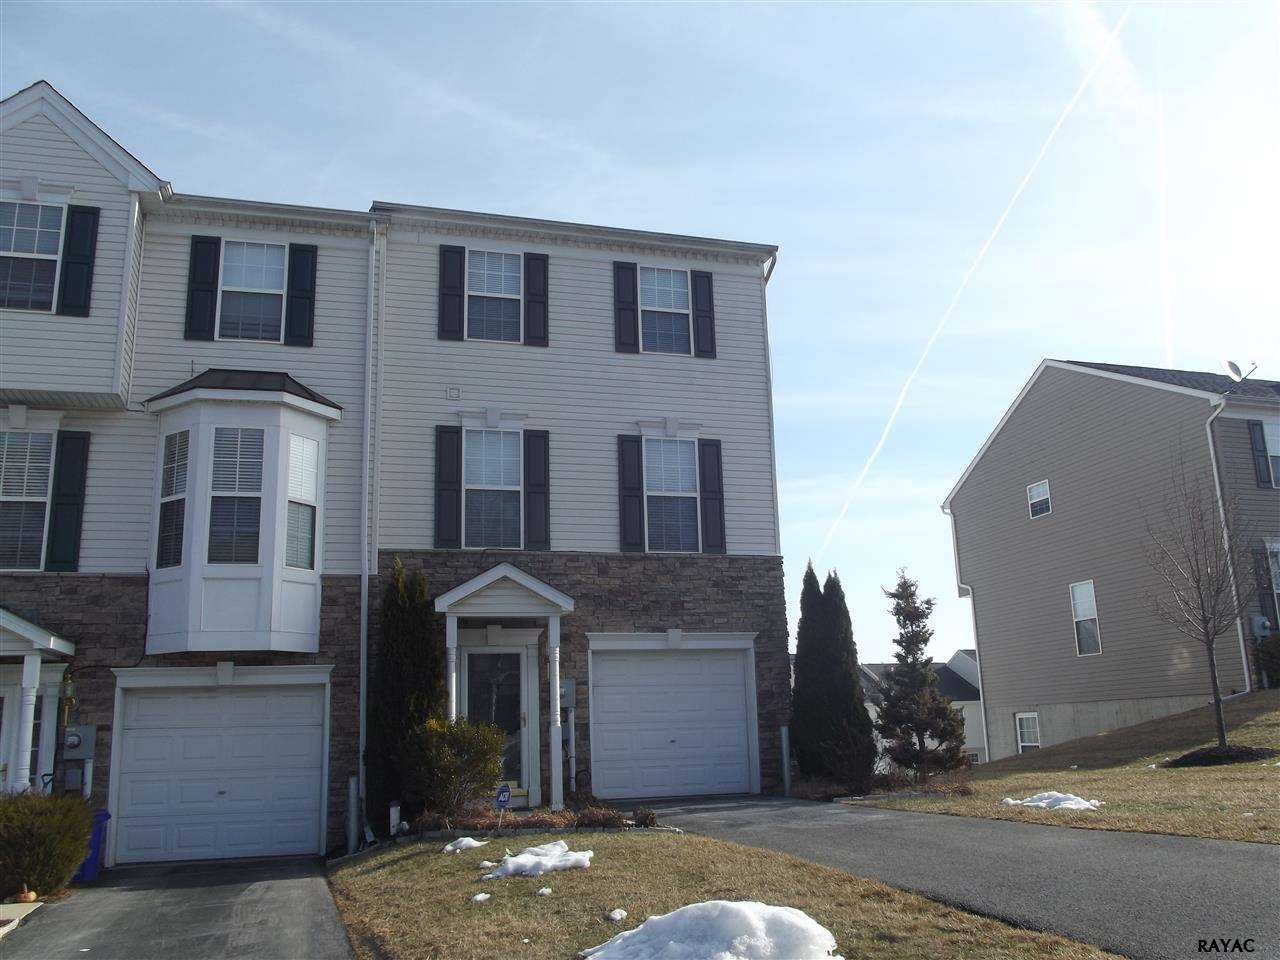 243 Bruaw Dr, York, PA 17406